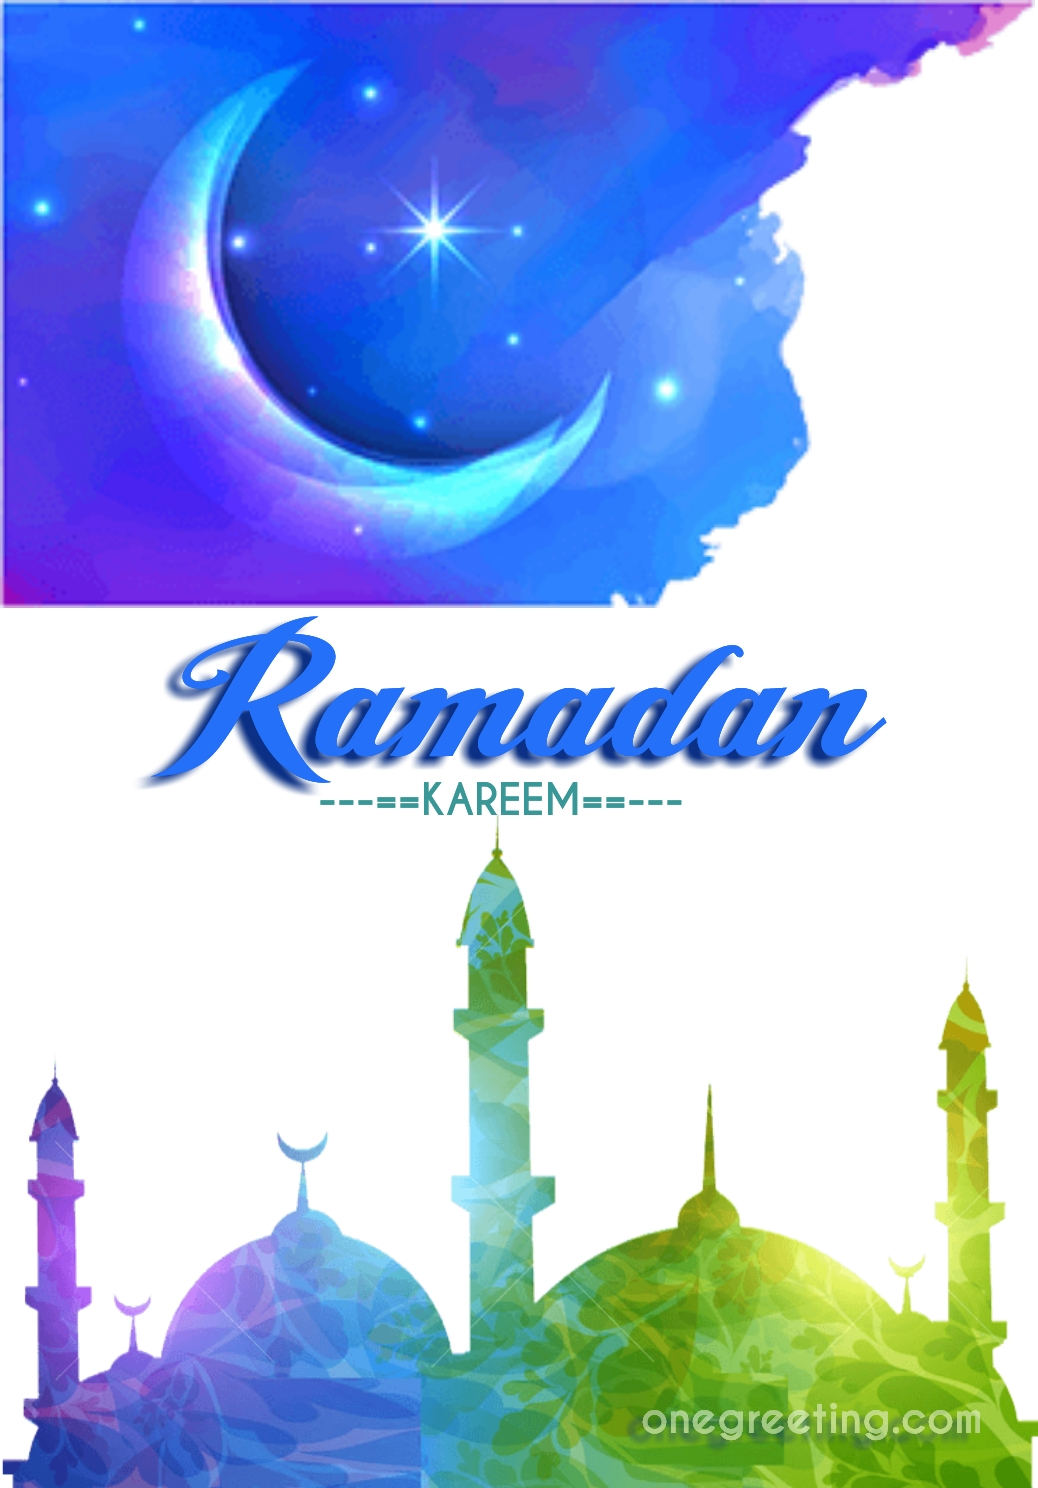 Wonderful Instagram Ramadan - ei6P3TXHKNGG  Pic_383466 .jpg